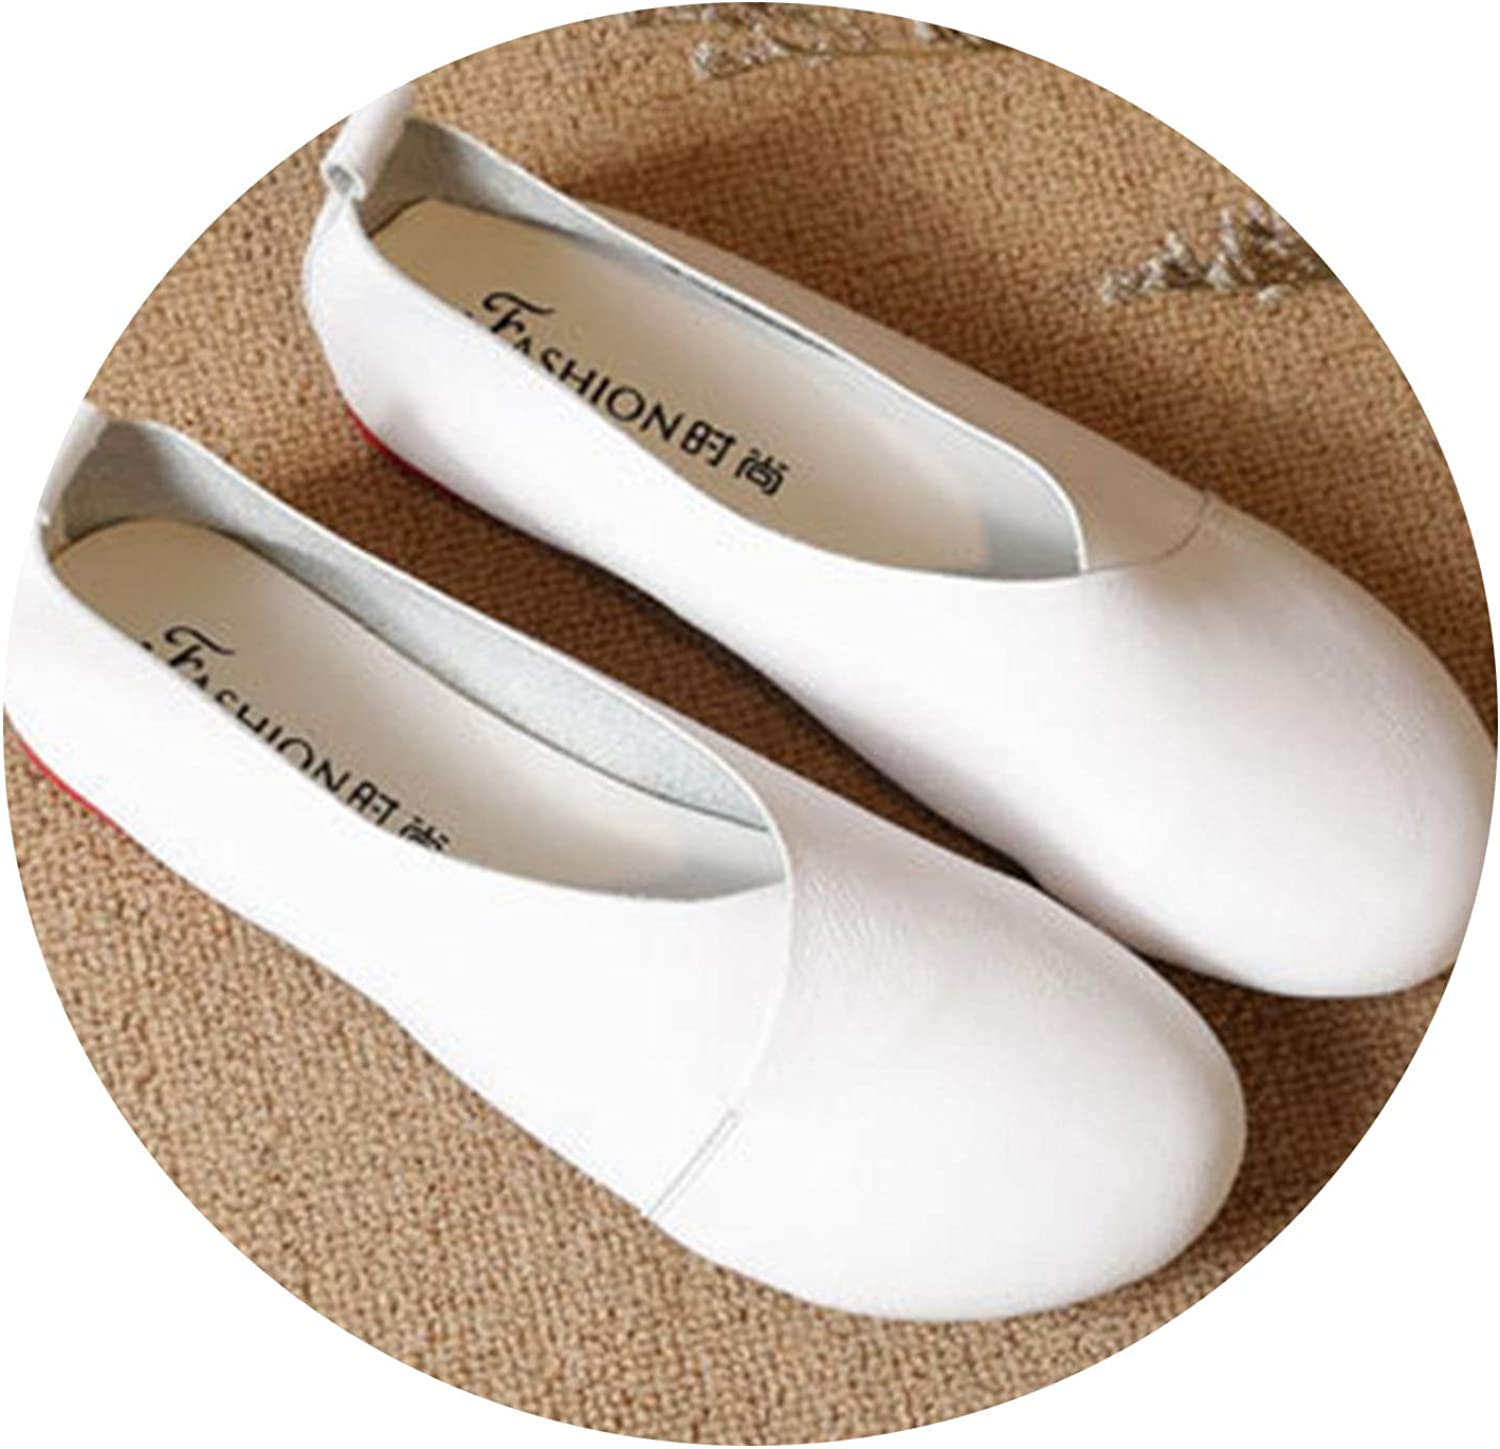 Don't mention the past 2019 Genuine Leather Flat shoes Woman Hand-Sewn Leather Loafers Cowhide Flexible Spring Casual shoes,White,7.5